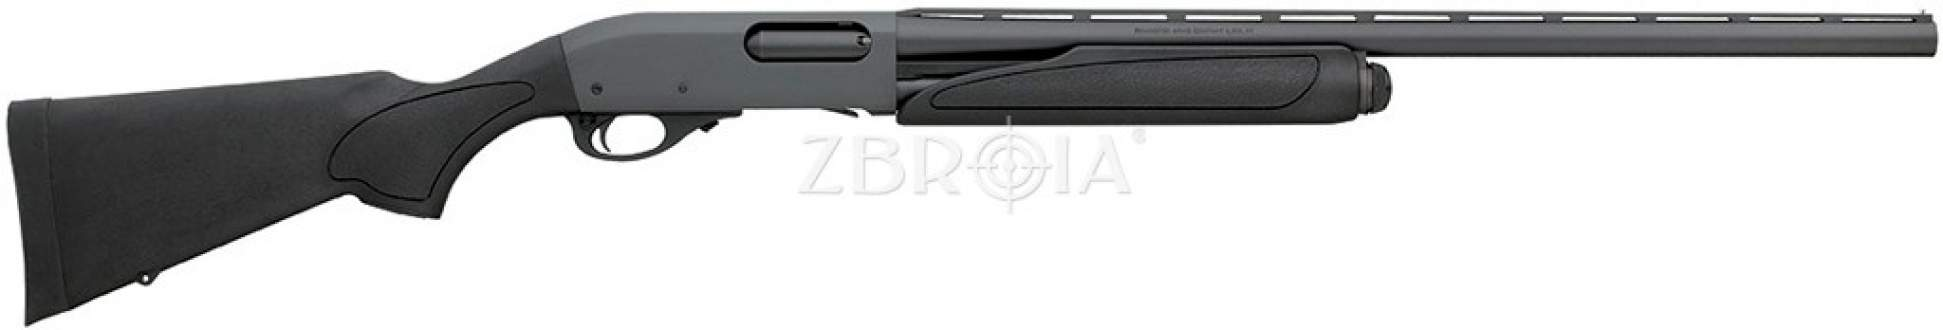 Ружье Remington 870 Express Synthetic кал. 12/76 (ствол 71 см.)